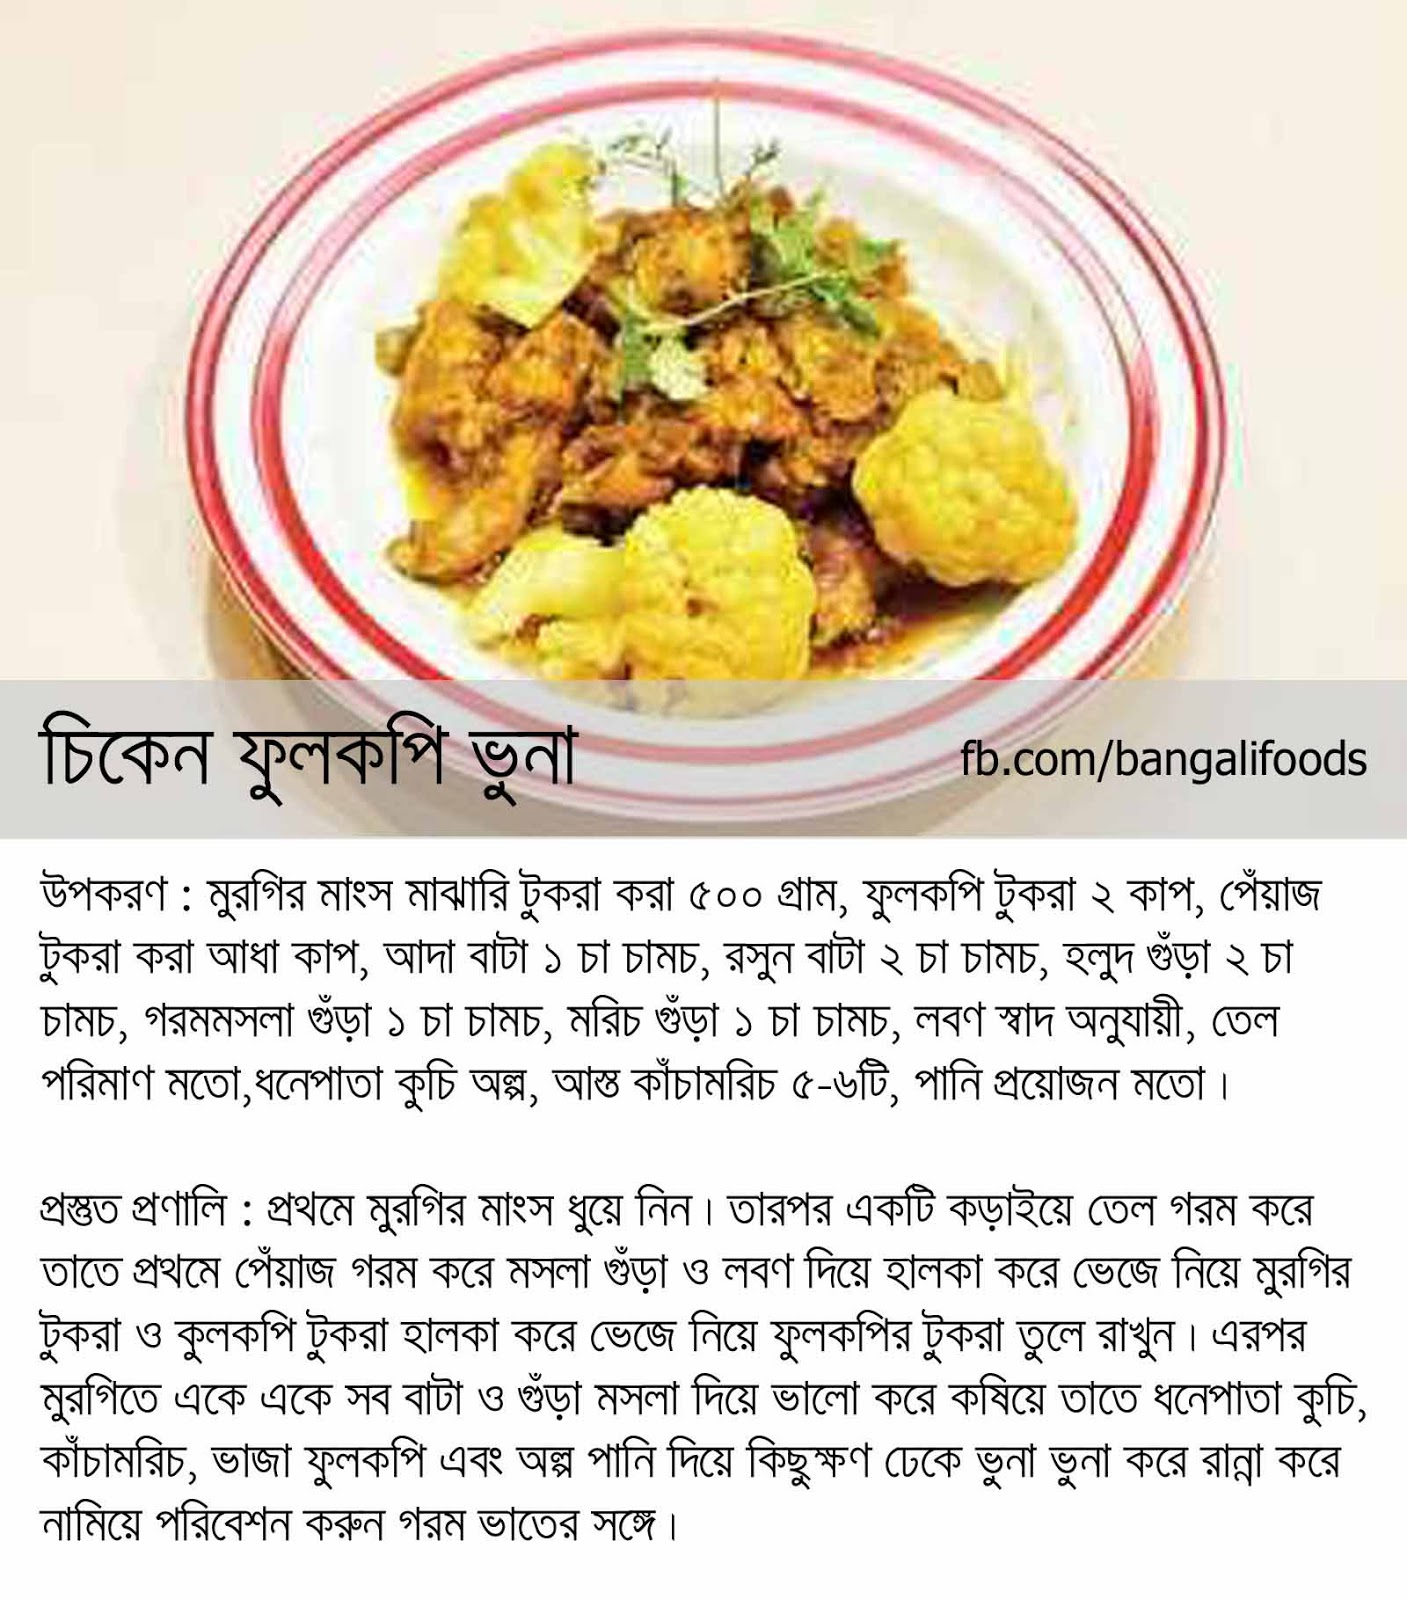 Bangali foods chicken fulkopi bhuna in bangla chicken fulkopi curry in bengali language forumfinder Image collections